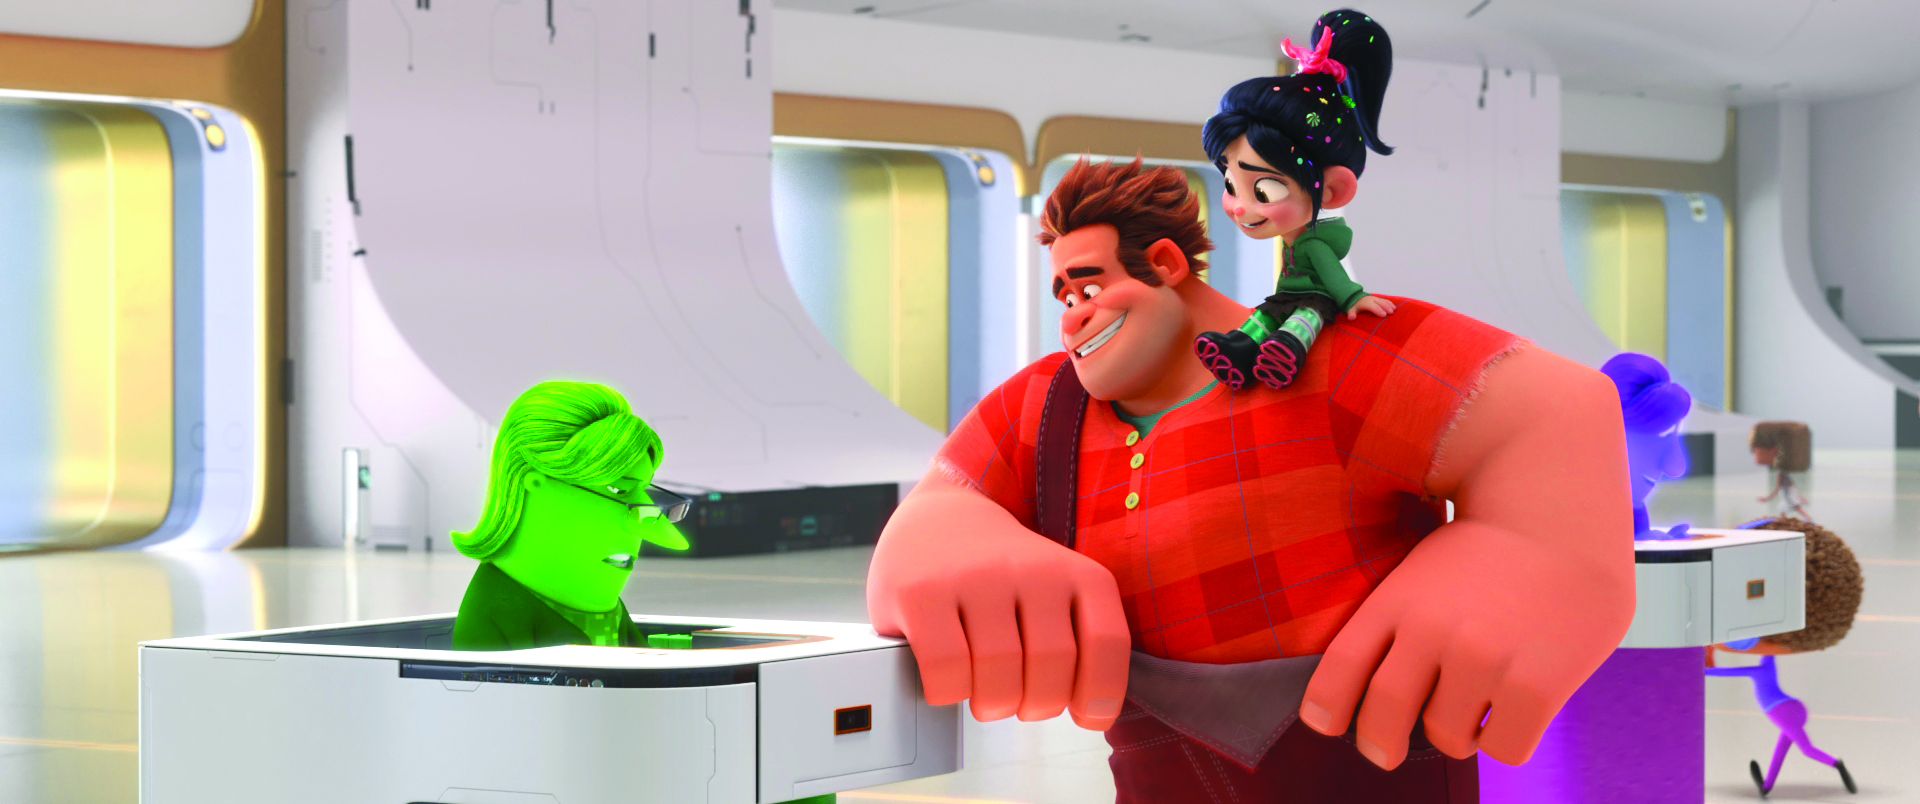 "PAYING THEIR DUES – In ""Ralph Breaks the Internet,"" video game bad guy Ralph and fellow misfit Vanellope von Schweetz venture into the expansive and thrilling world of the internet. In an effort to find a replacement part for Vanellope's arcade game, Sugar Rush, Ralph and Vanellope successfully bid at eBay, only to learn they'll actually have to pay for their purchase. Featuring the voices of John C. Reilly as Ralph, Sarah Silverman as Vanellope, and Rebecca Wisocky as eBay Elayne, the cashier, the follow-up to 2012's ""Wreck It Ralph"" opens in theaters nationwide Nov. 21, 2018. ©2018 Disney. All Rights Reserved."